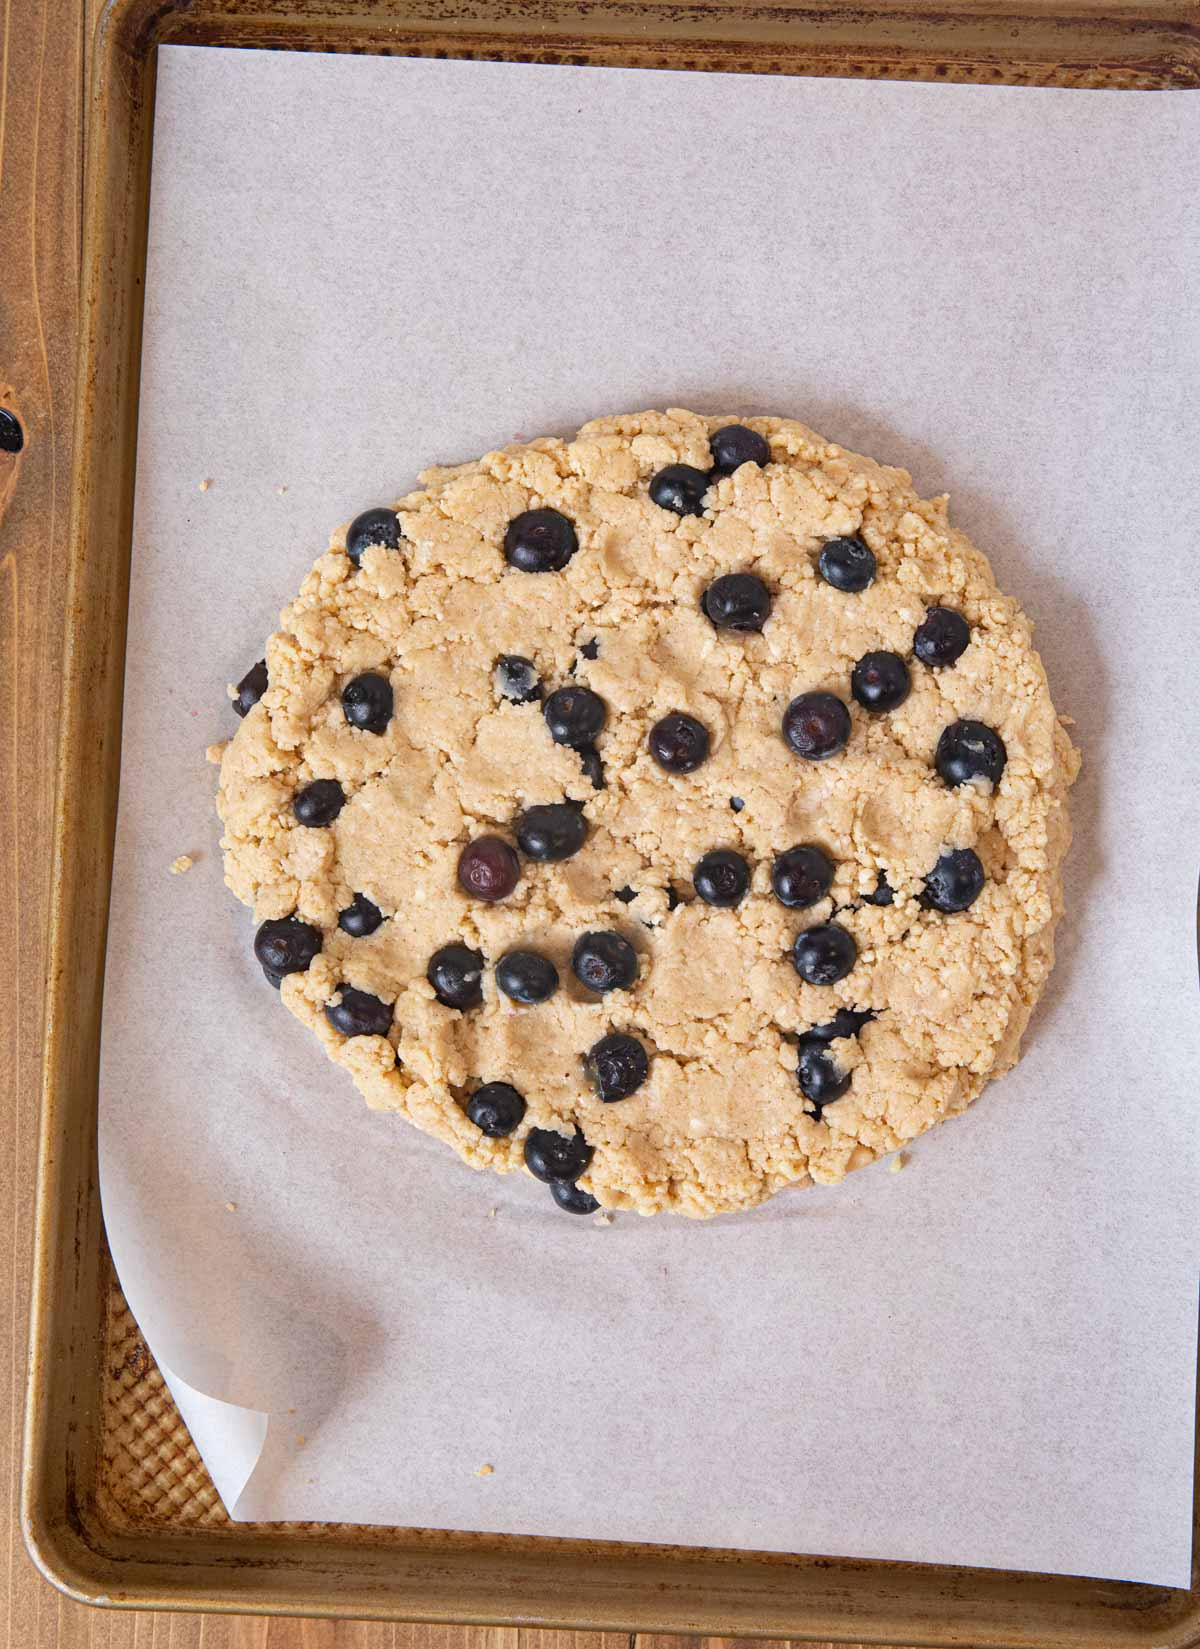 Blueberry Scones dough in flattened circle on cookie sheet